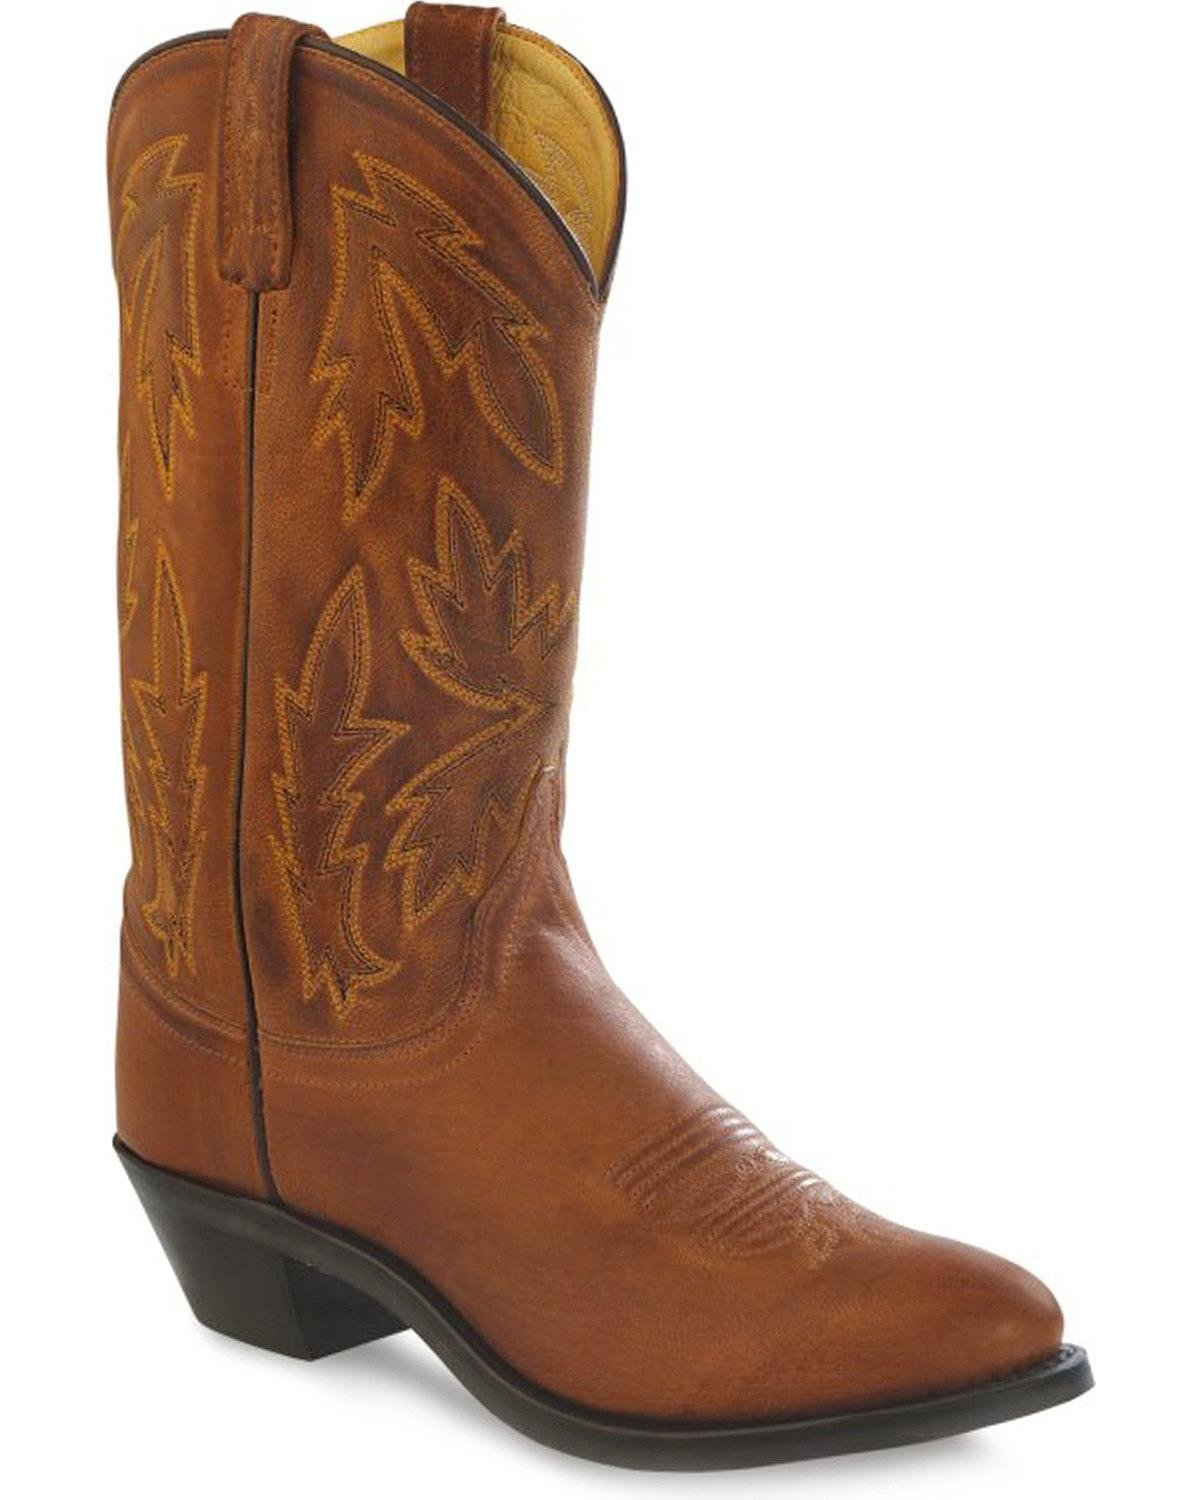 Old West Women's Polanil Western - Cowboy Boot Round Toe - Western Ow2034l B00MNICB0Y 7 M US|Tan 841c37